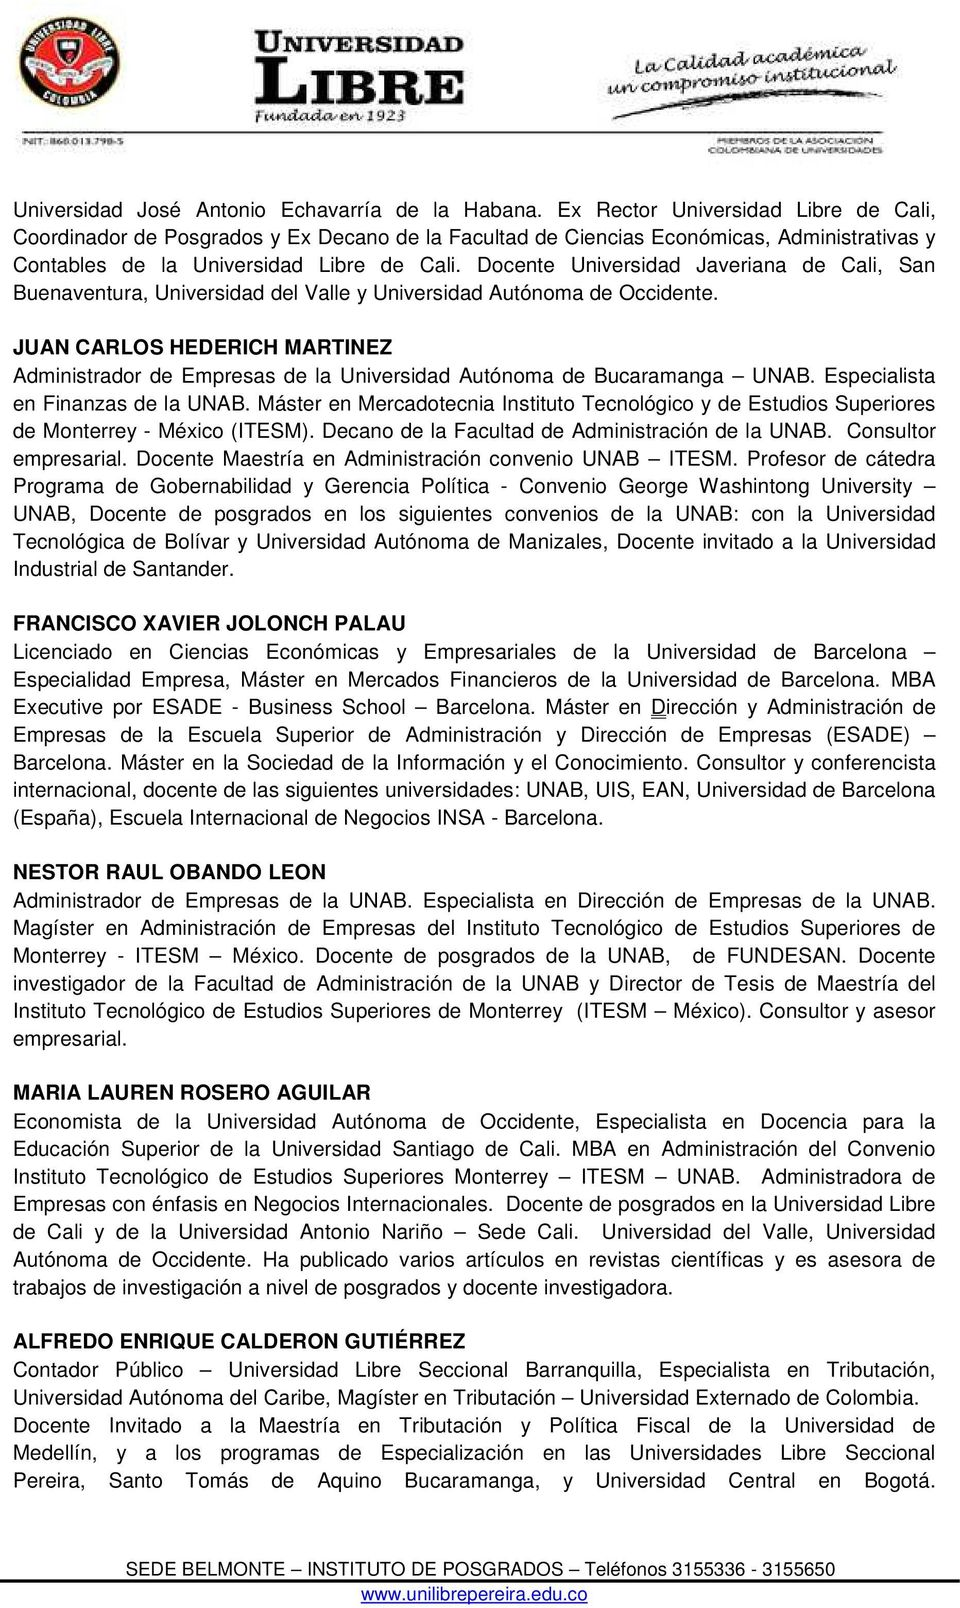 Docente Universidad Javeriana de Cali, San Buenaventura, Universidad del Valle y Universidad Autónoma de Occidente.